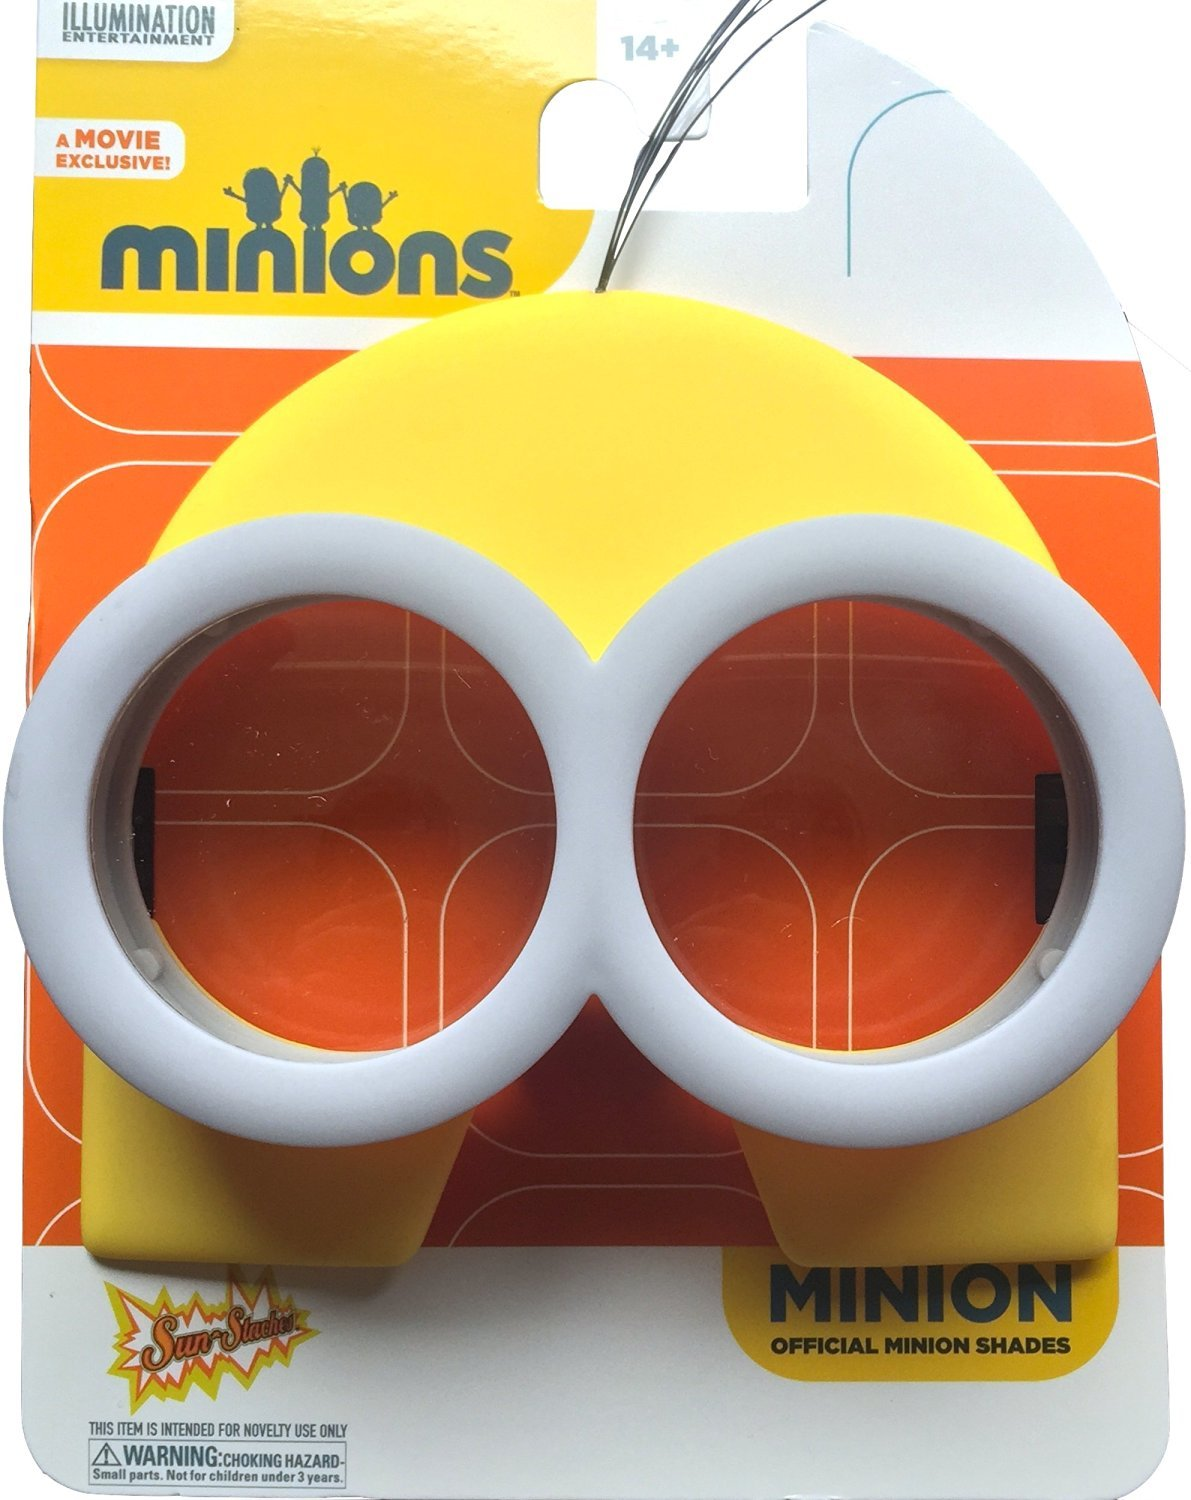 Despicable Me Minions Movie Exclusive Minion Official Minion Shades